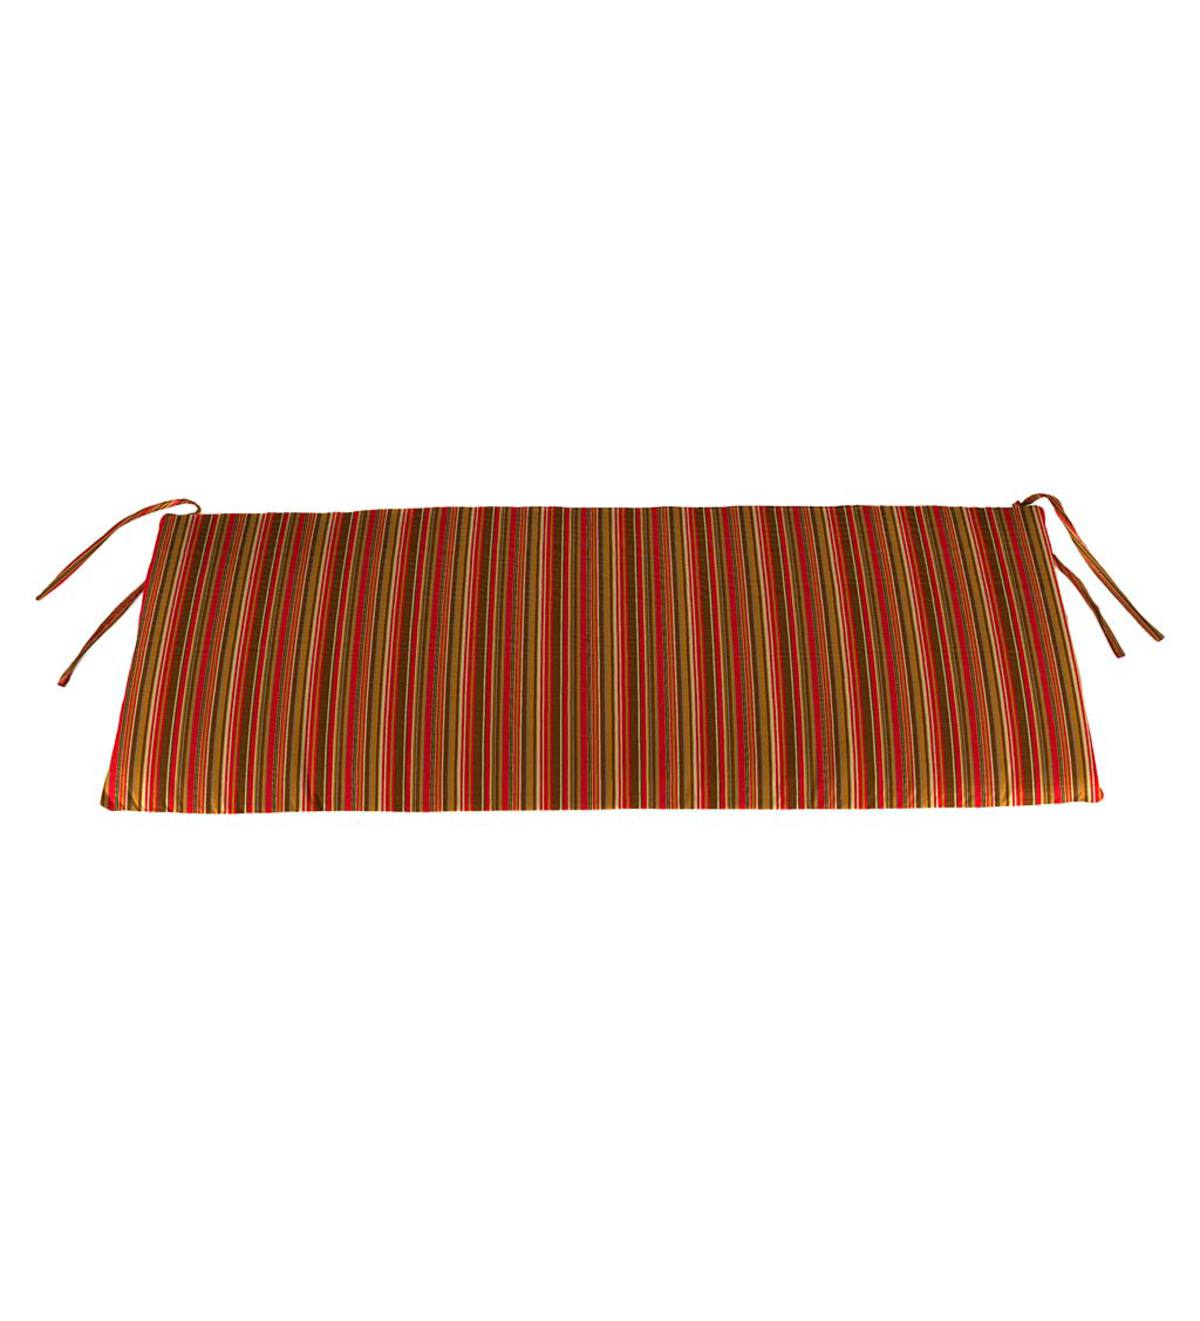 "Sunbrella Classic Swing/Bench Cushion, 41"" x 17"" x 3"" - Cherry Stripe"